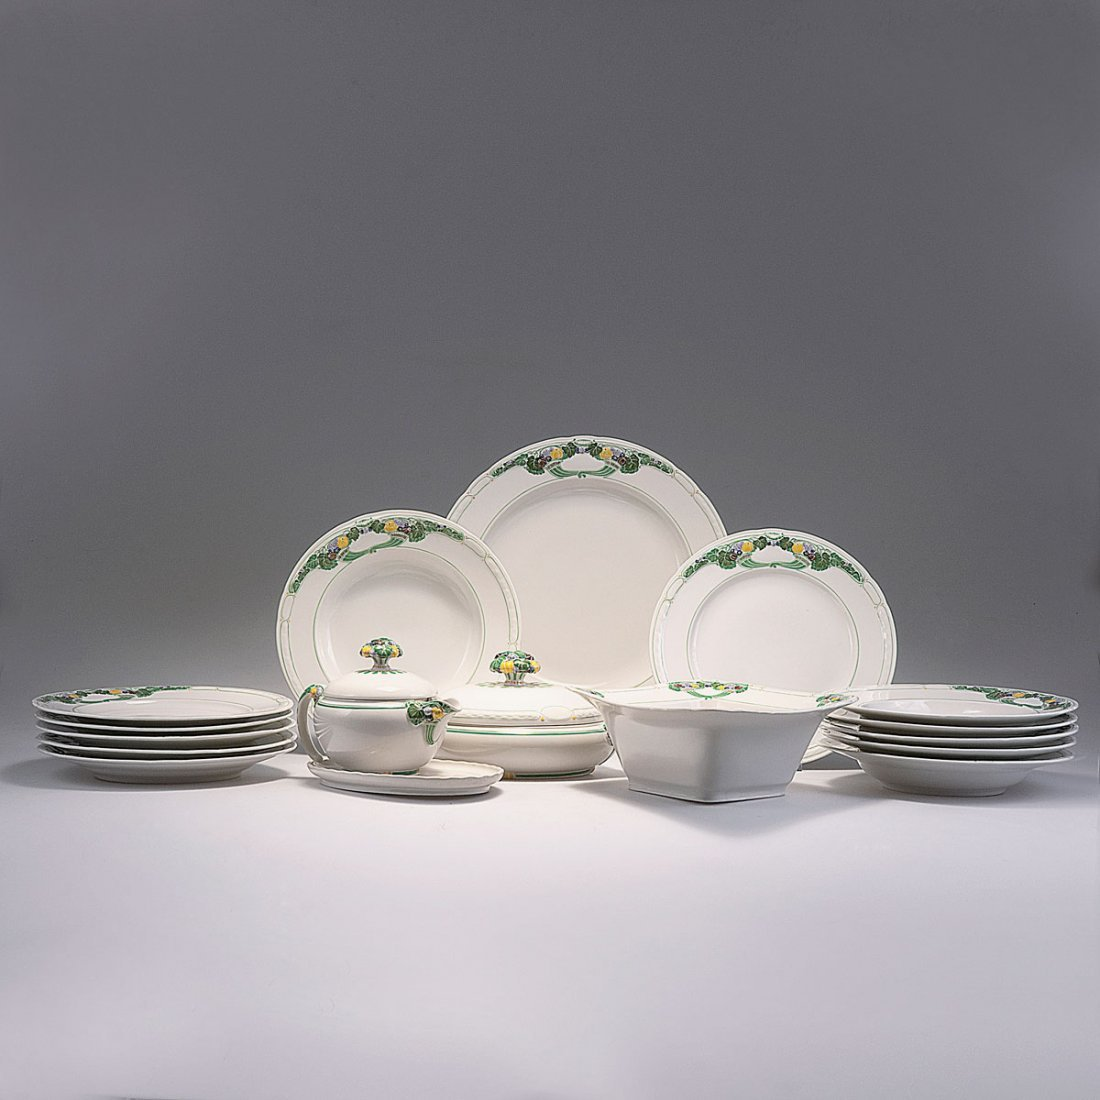 15: 'Ceres' dining set, 1912